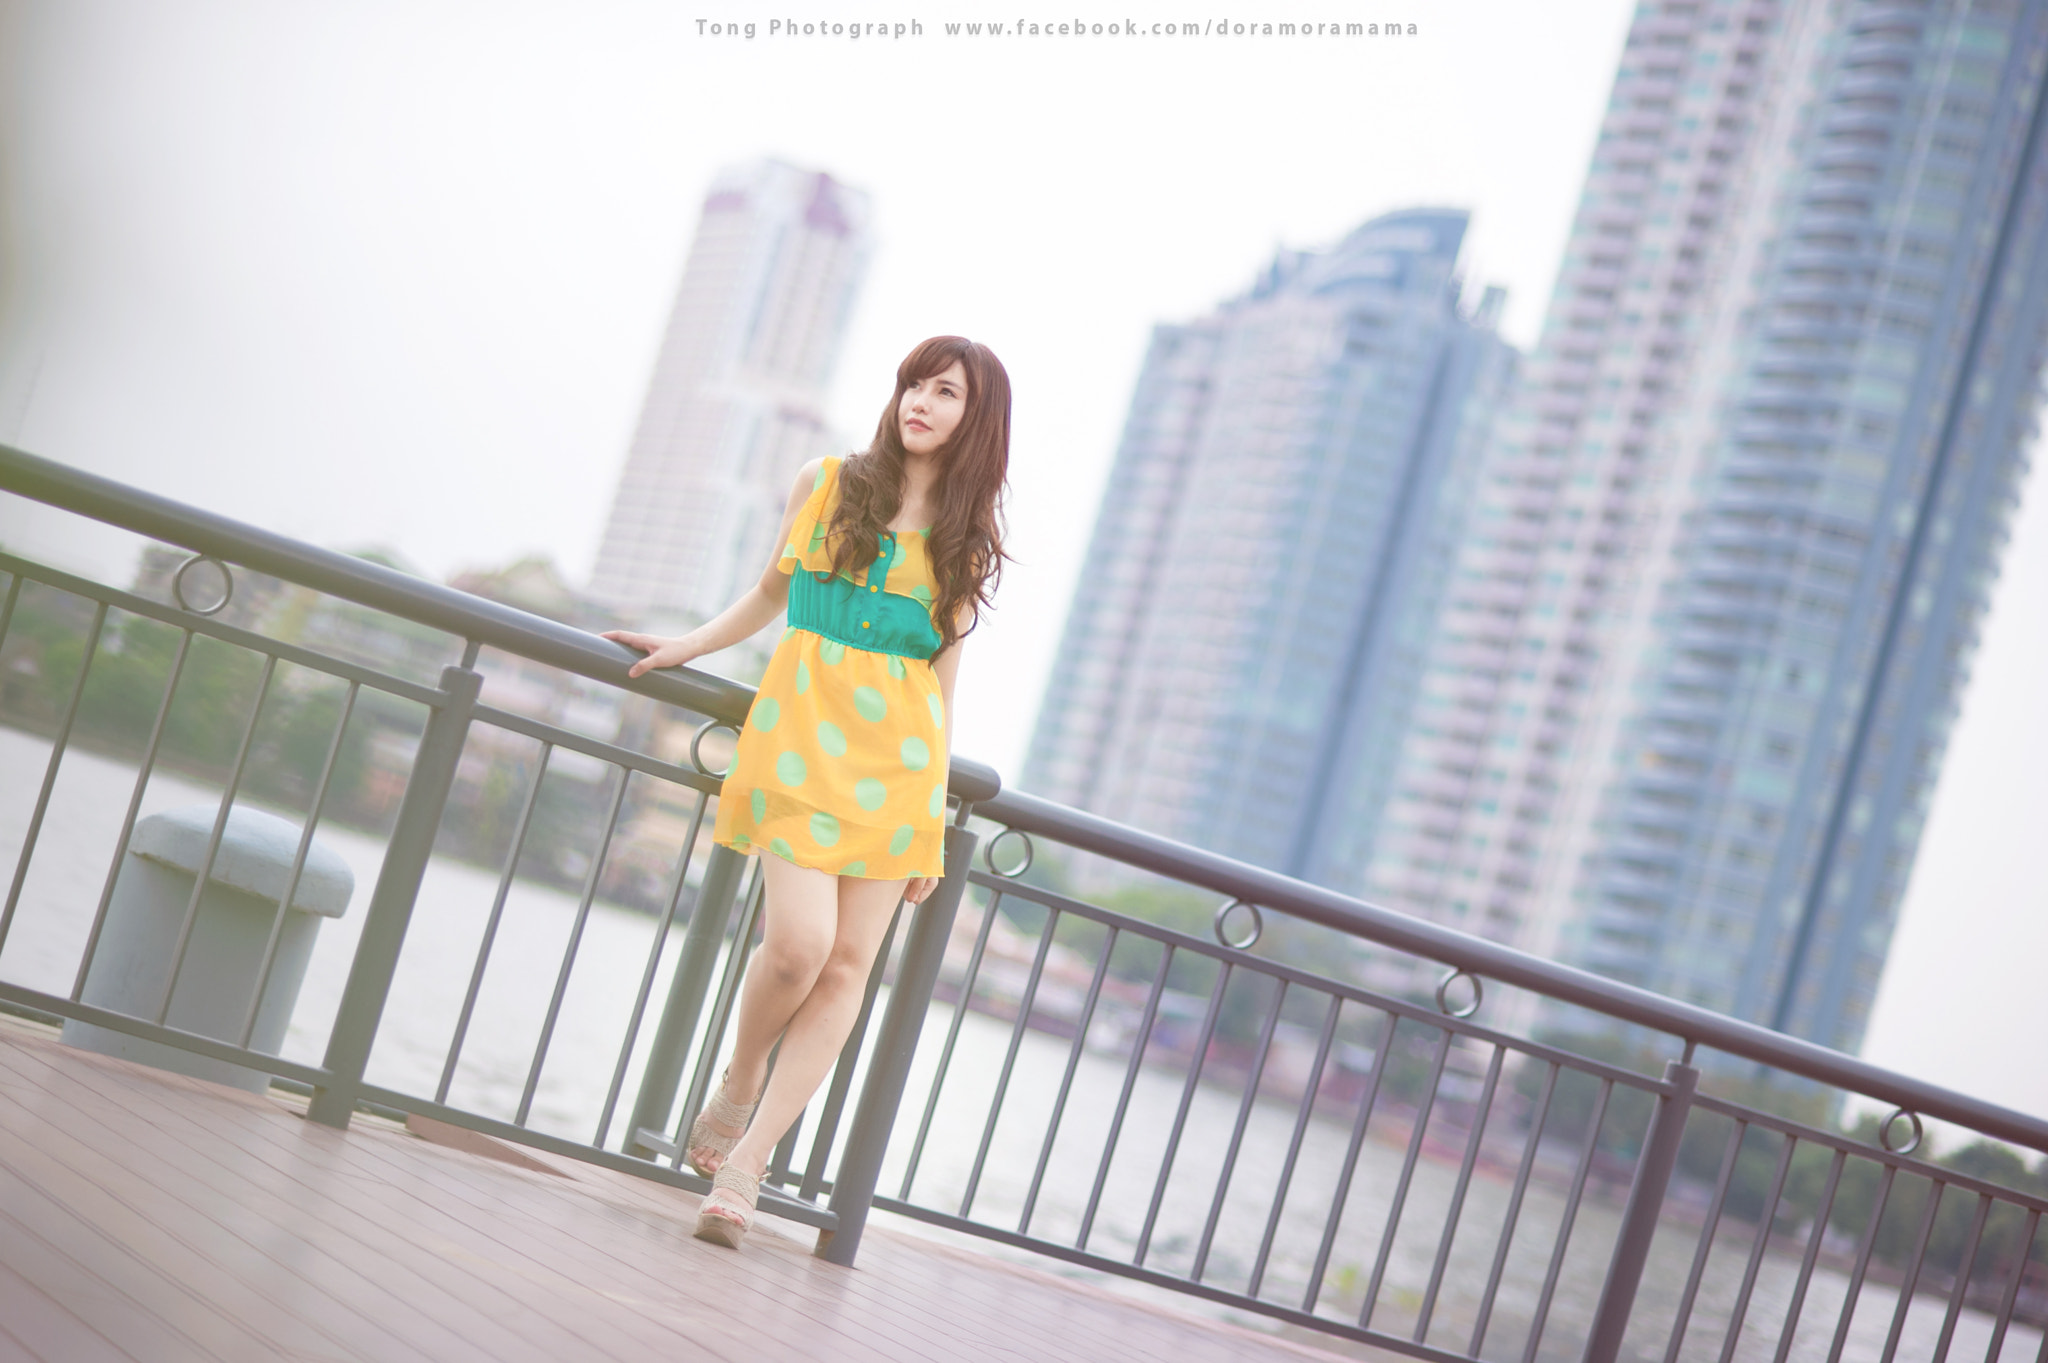 Photograph ^_^ by Tong Photograph on 500px